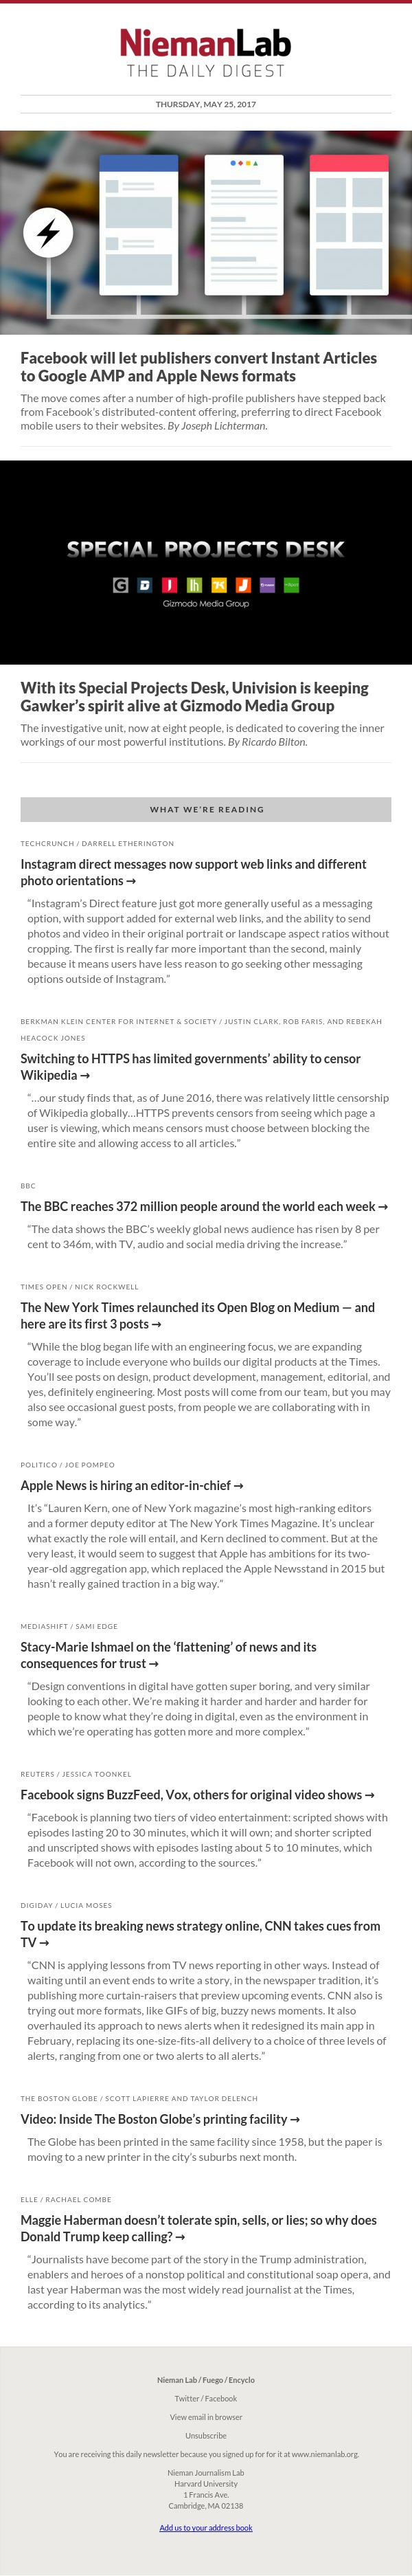 Facebook will let publishers convert Instant Articles to Google AMP and Apple News formats: The latest from Nieman Lab